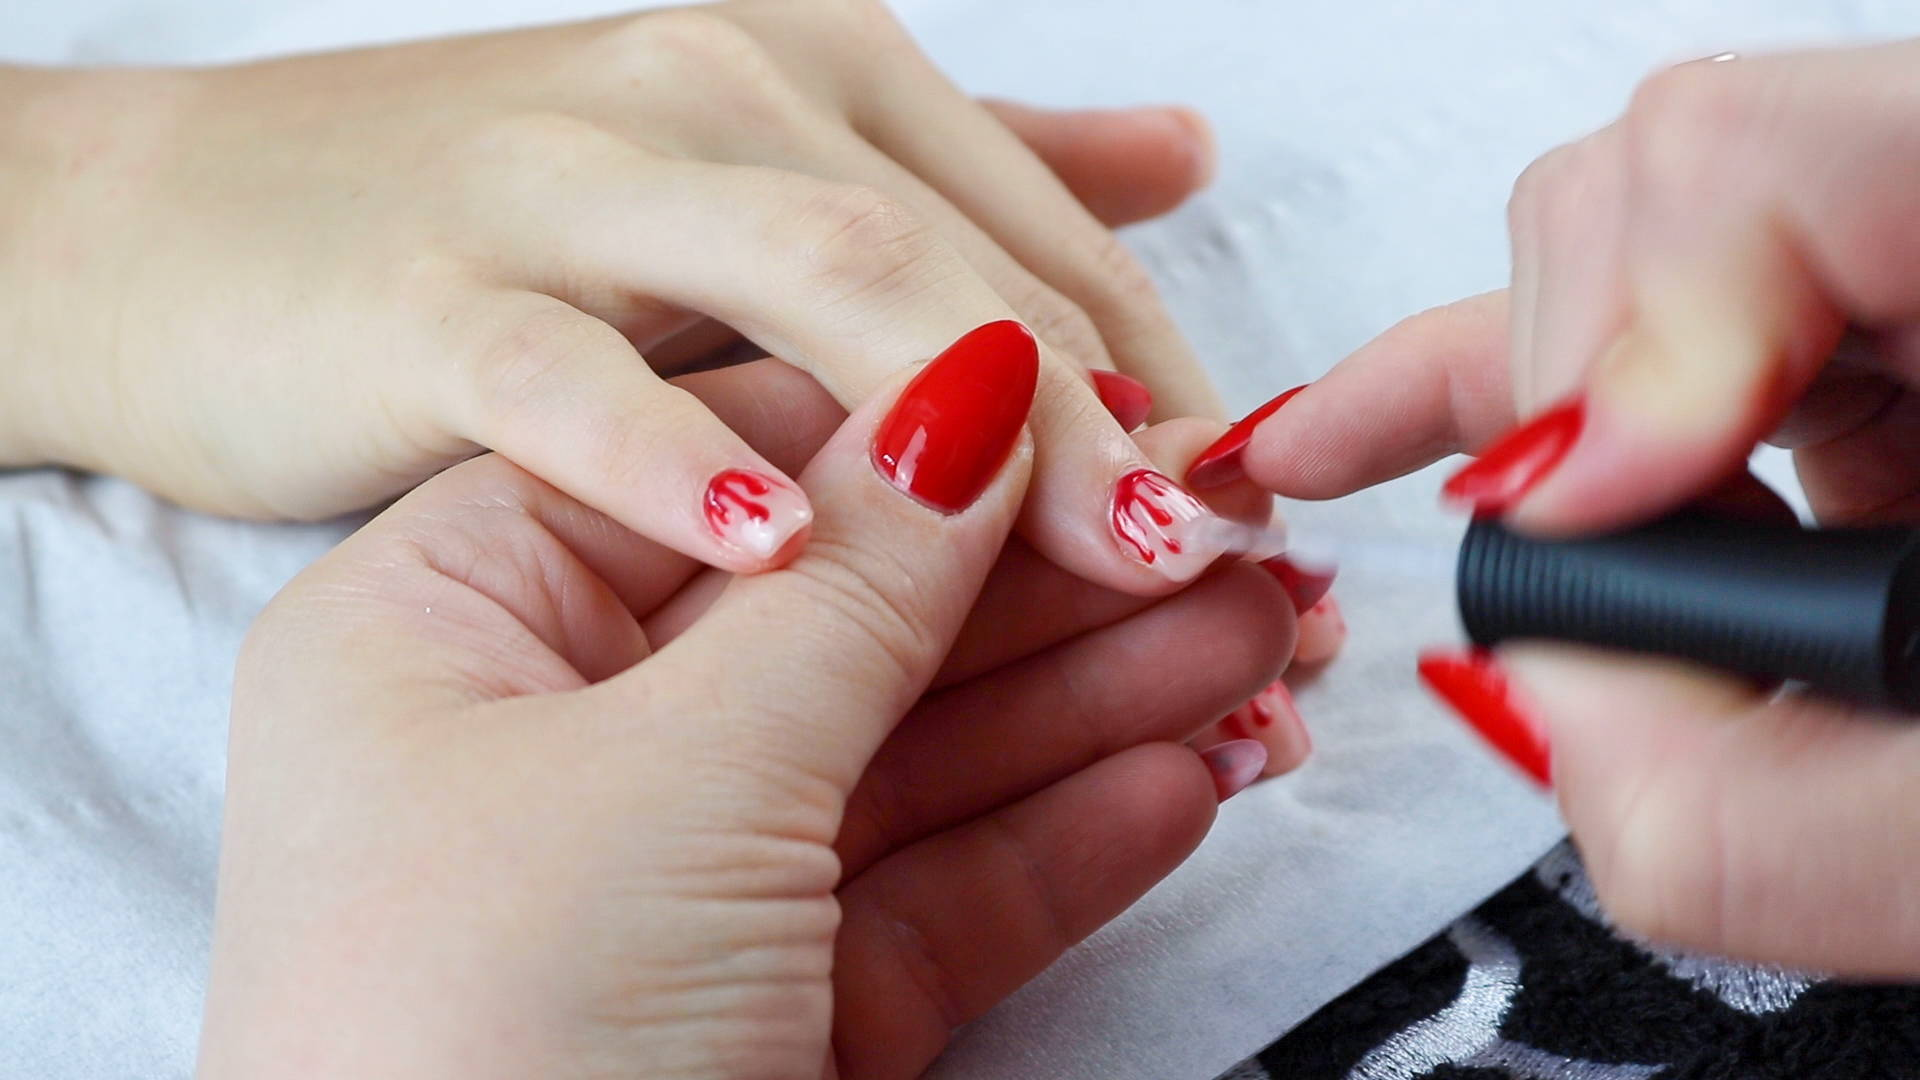 ORLY Glosser Topcoat being painted on finished blood nails